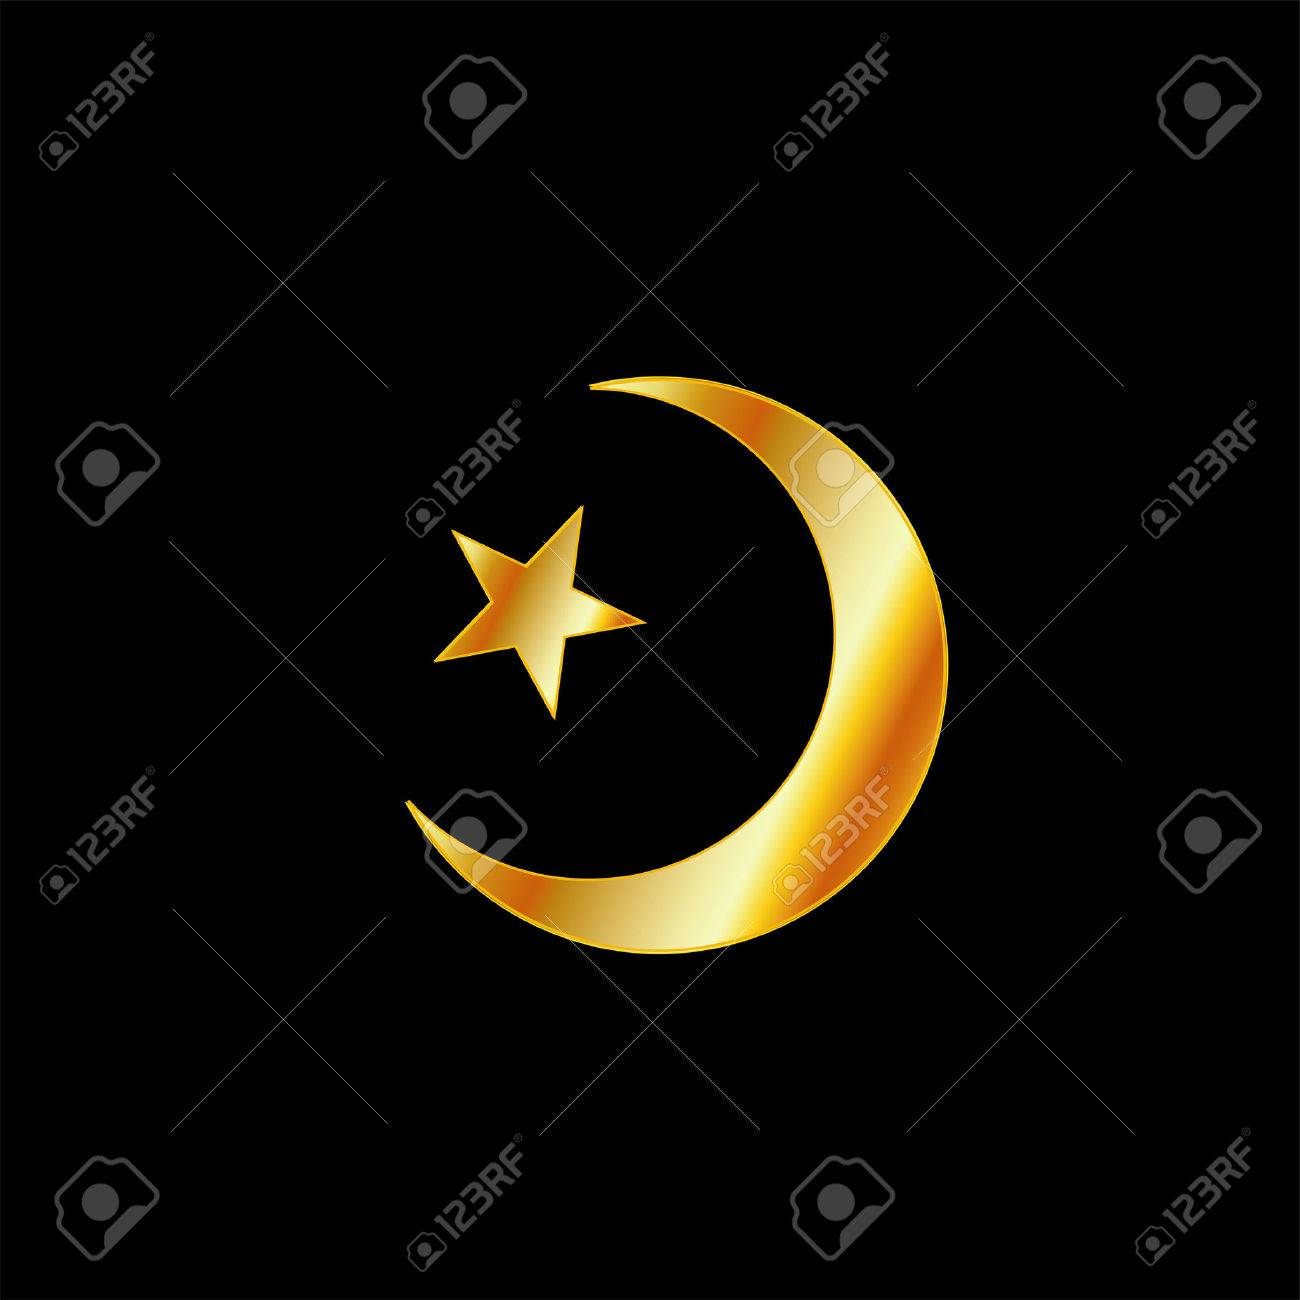 Symbol of islam a crescent moon and star royalty free cliparts symbol of islam a crescent moon and star stock vector 26561146 biocorpaavc Gallery